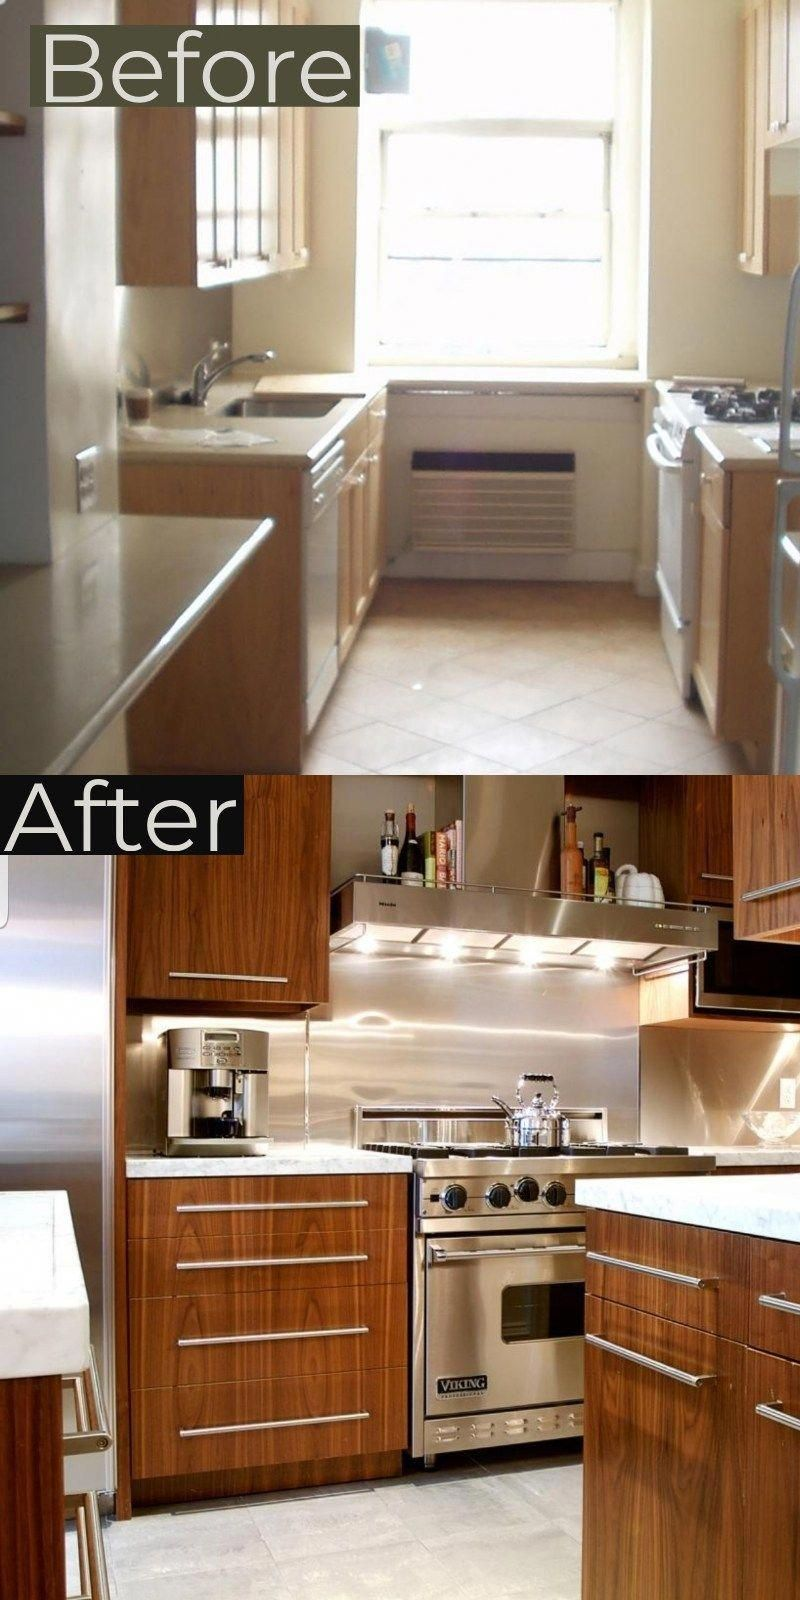 Galley Kitchen Remodel Before And After Ideas 2019 Trends #onabudget #small #beforeandafter #fixerupper #ideas #narrow #layout #joannagaines #open #island #homeremodelingpictures #galleykitchenlayouts